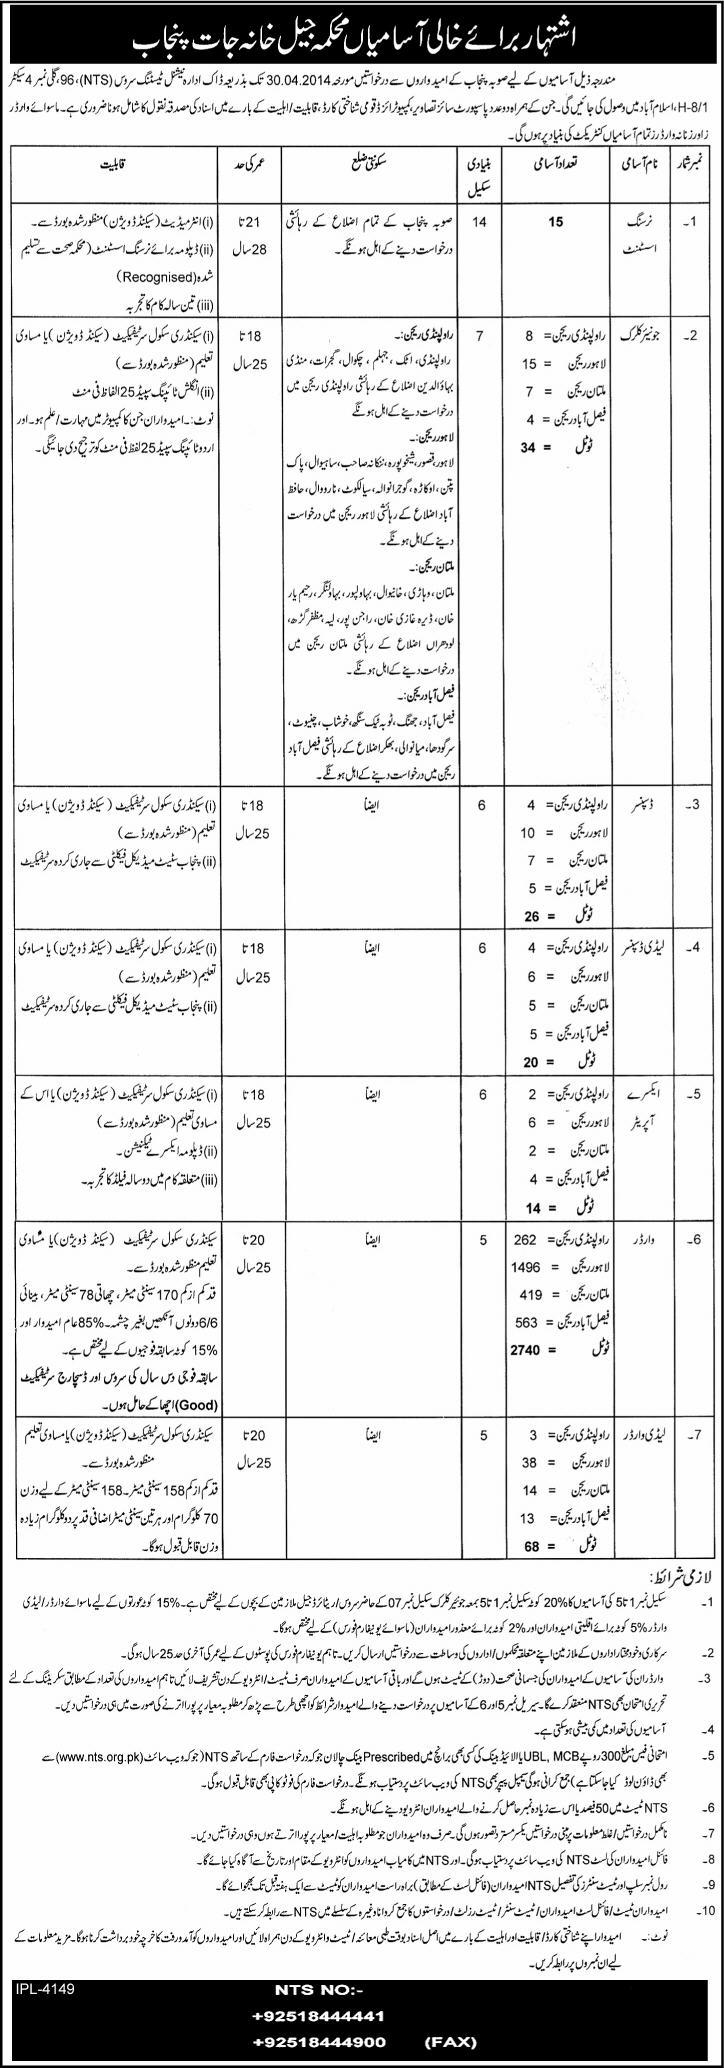 Punjab Jail Warden, Lady Warden Jobs 2014